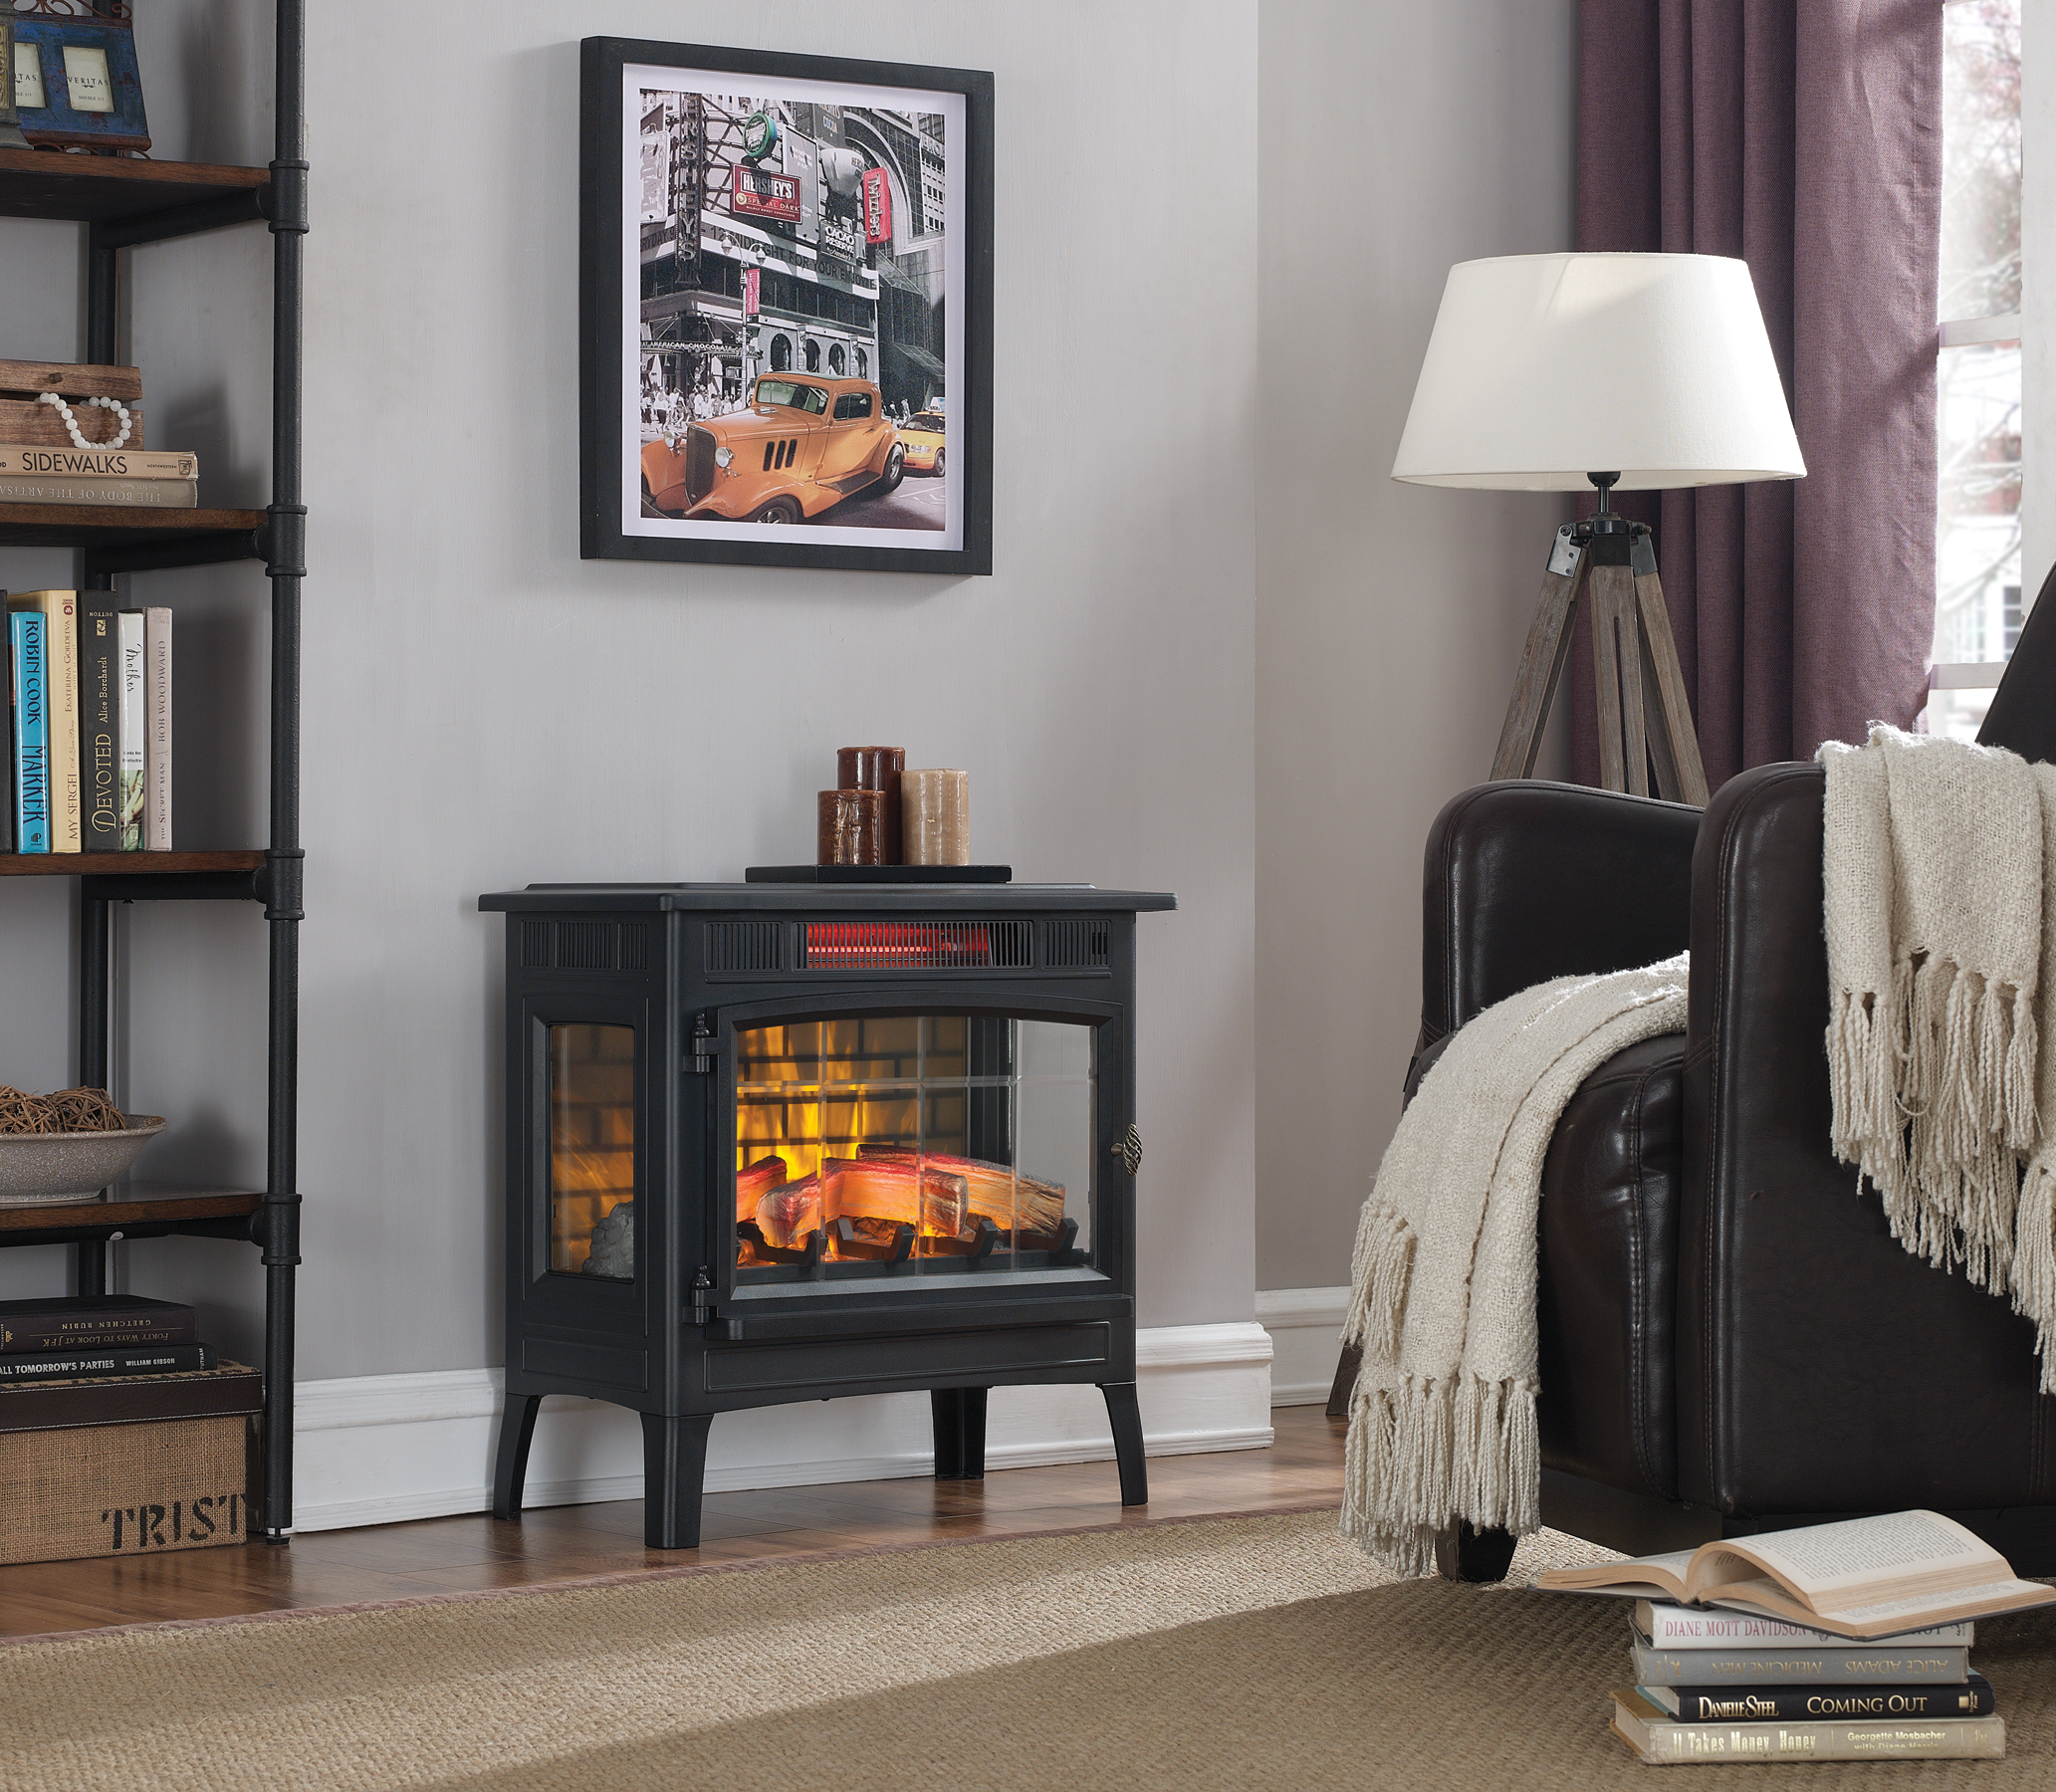 Duraflame 3D Electric Fireplace Stove Review